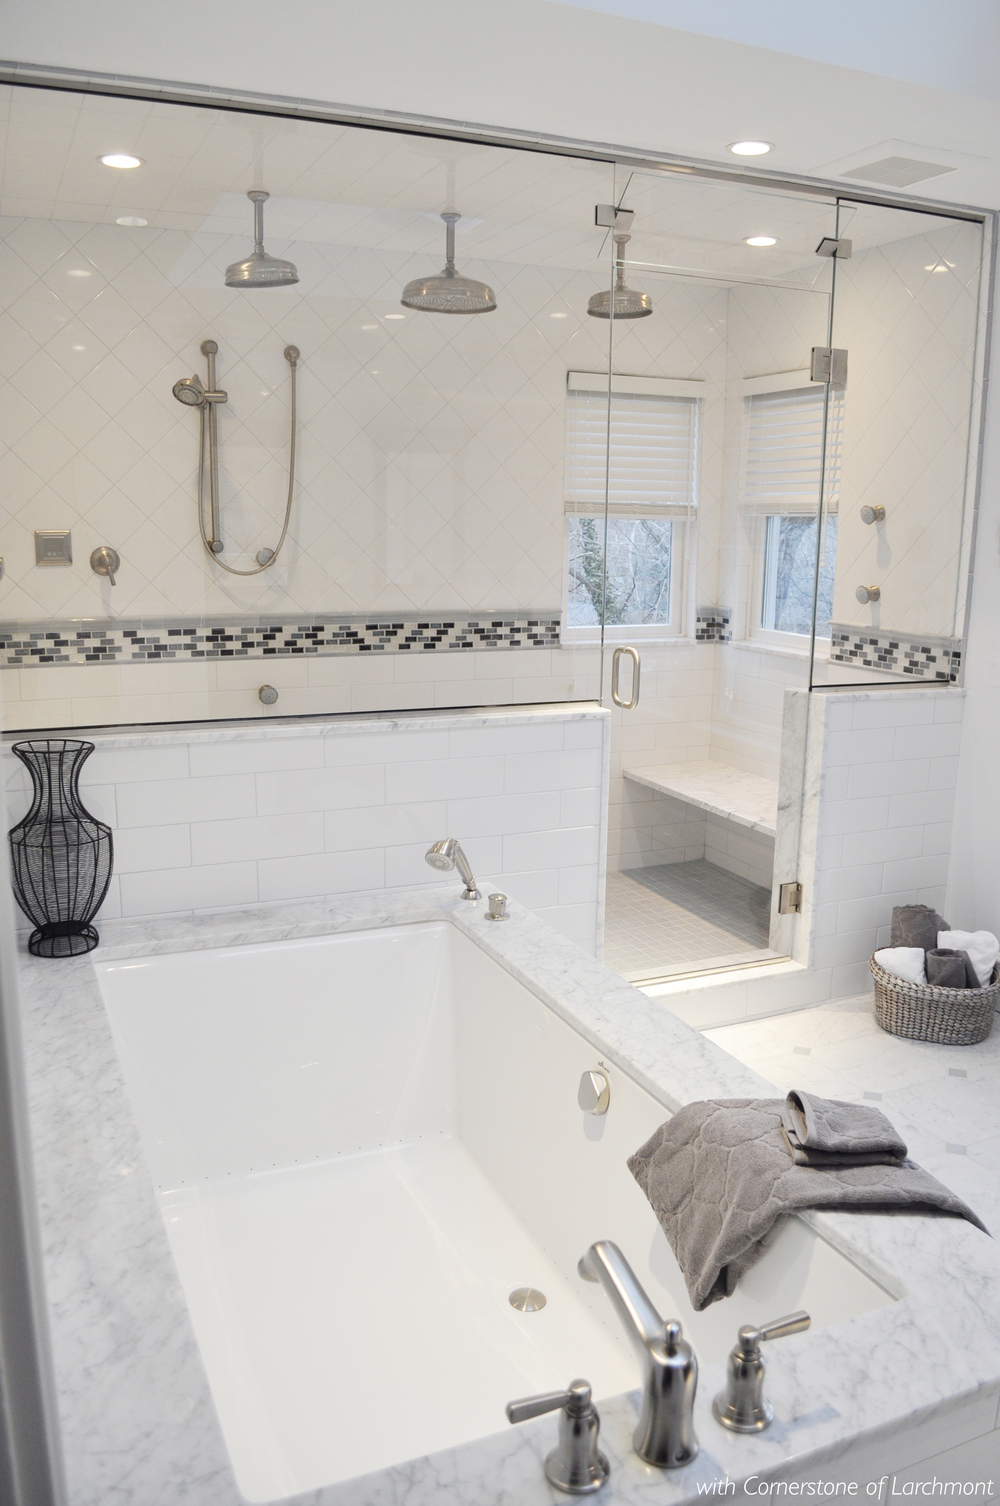 Kim Annick Mitchell_Interior Designer_Larchmont Master Bathroom_Marble Bathroom_White Tile_Tub_Steam Shower.jpg